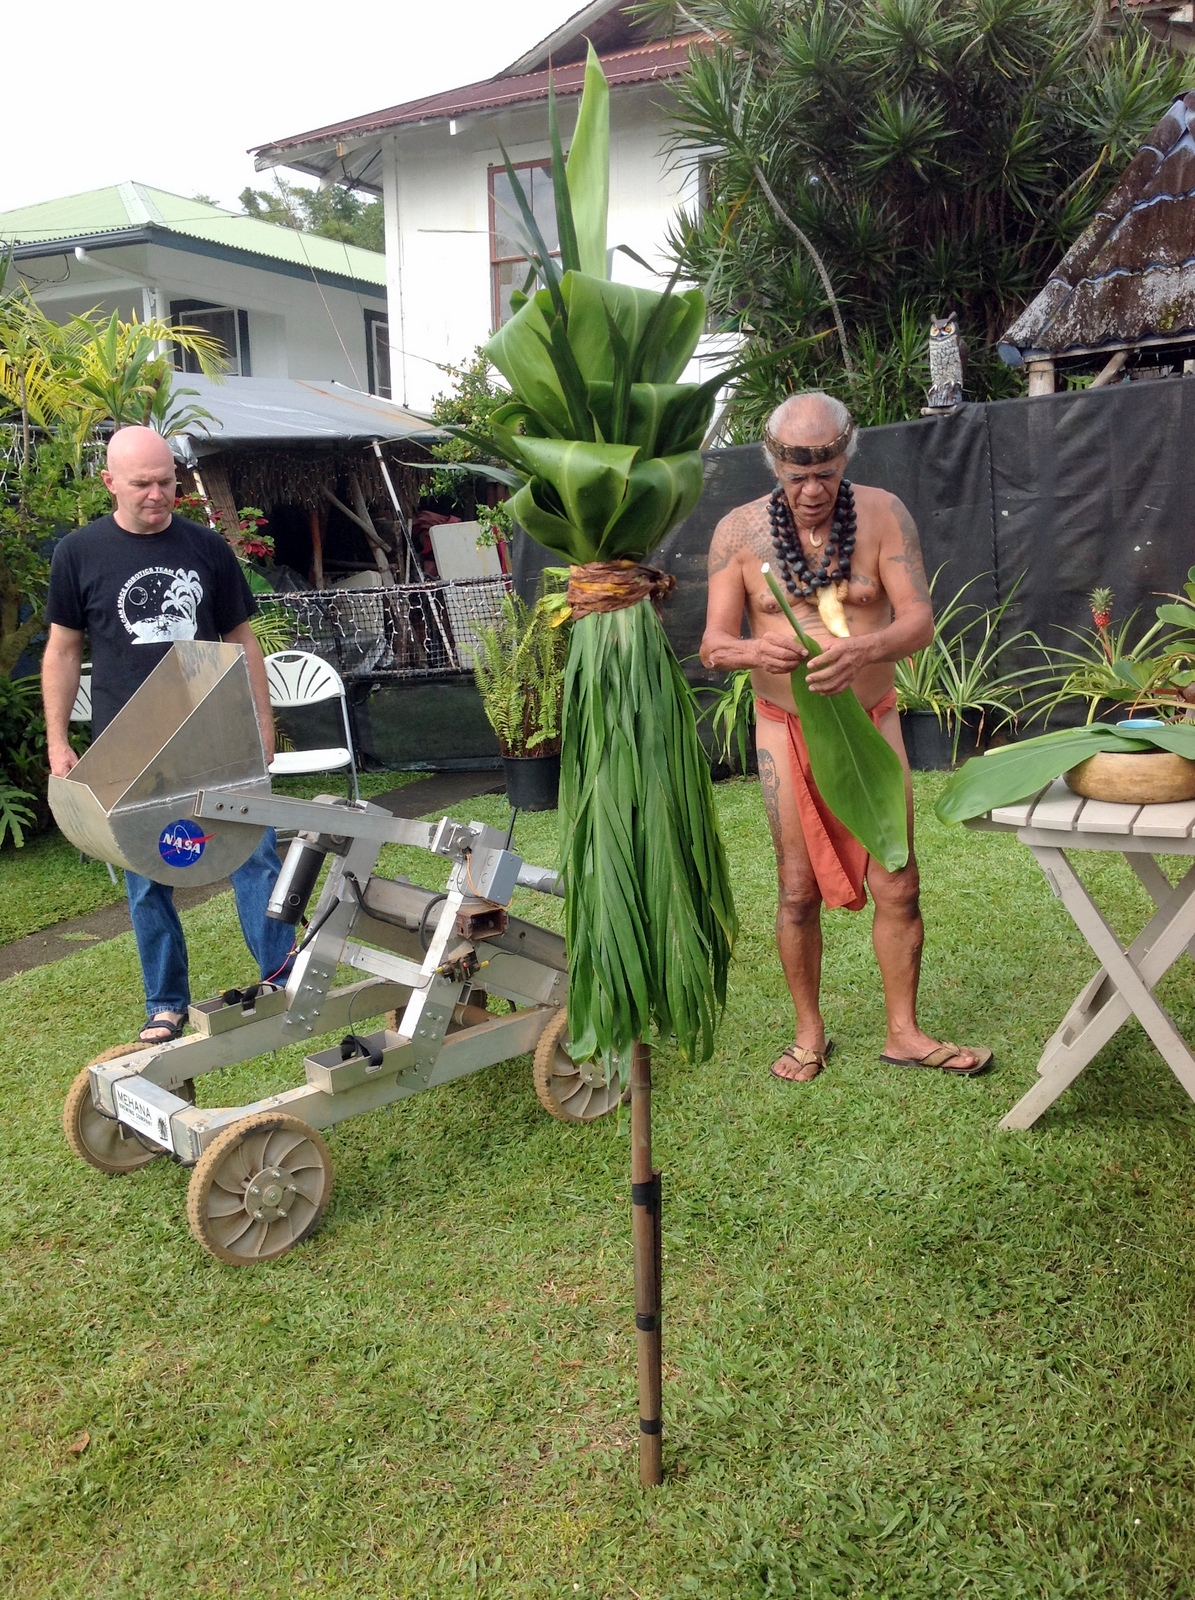 Kahuna doing blessing with ti. Robot on lawn. Marc Roberts in background.